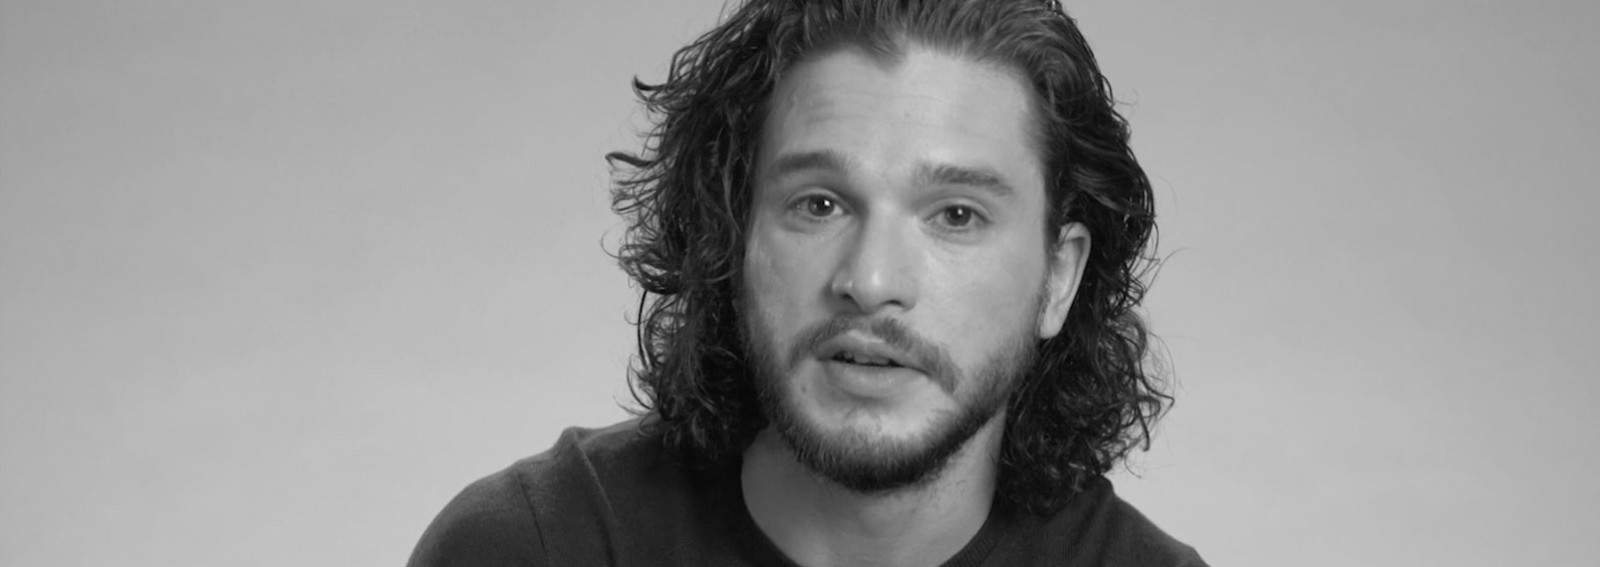 Kit Harington makes a surprising confession about his 'Game of Thrones' audition